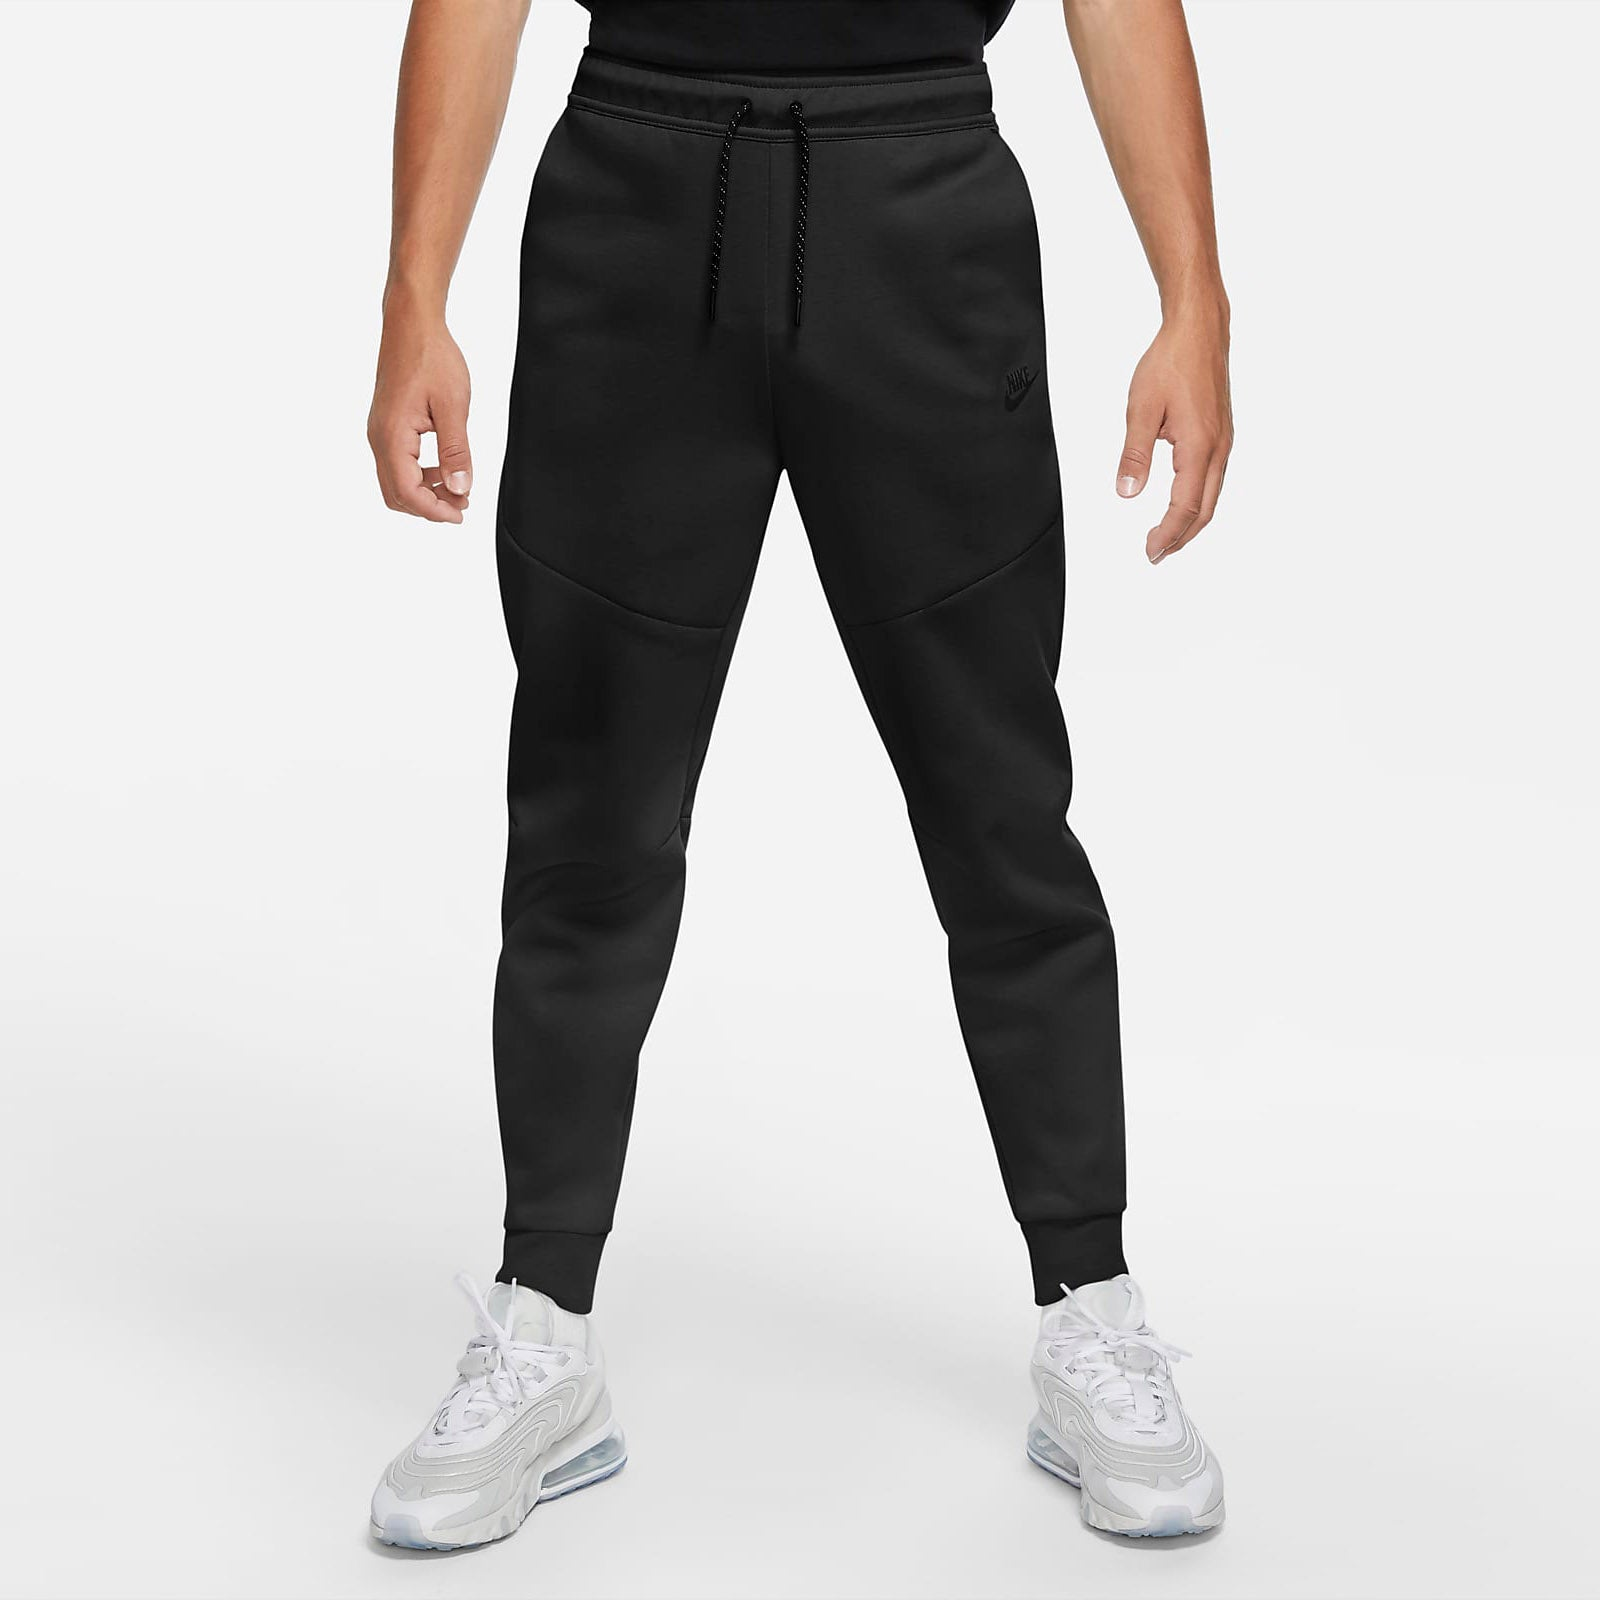 Nike Tech Fleece Pants CU4495-010 Black